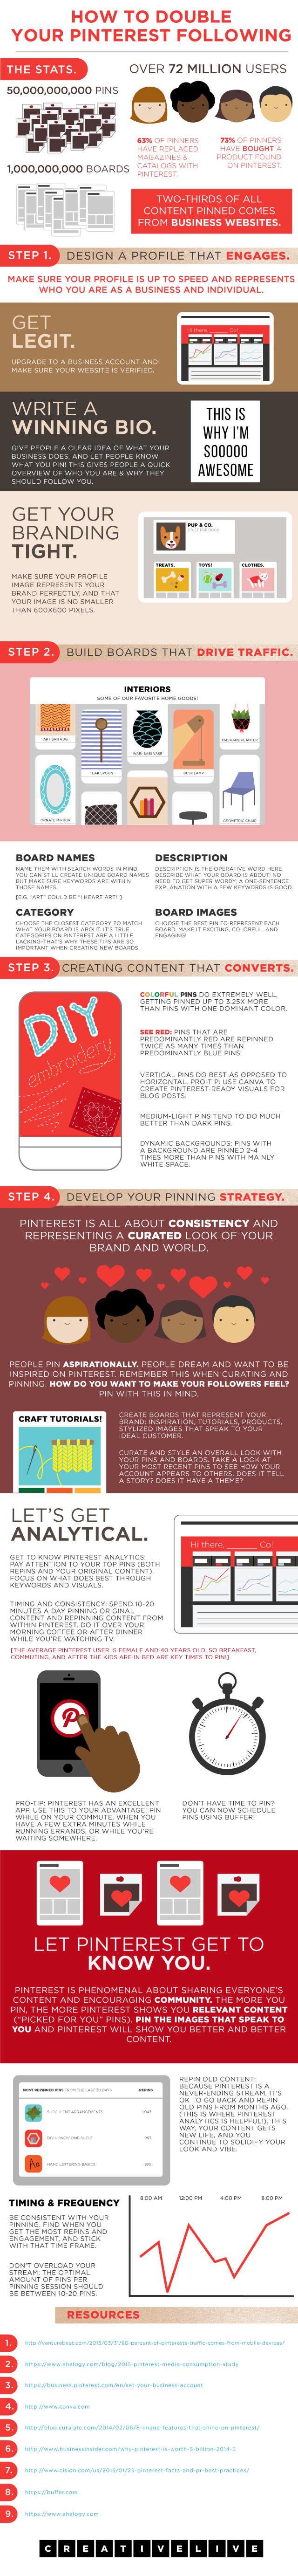 How to get more followers from Pinterest? #infographic